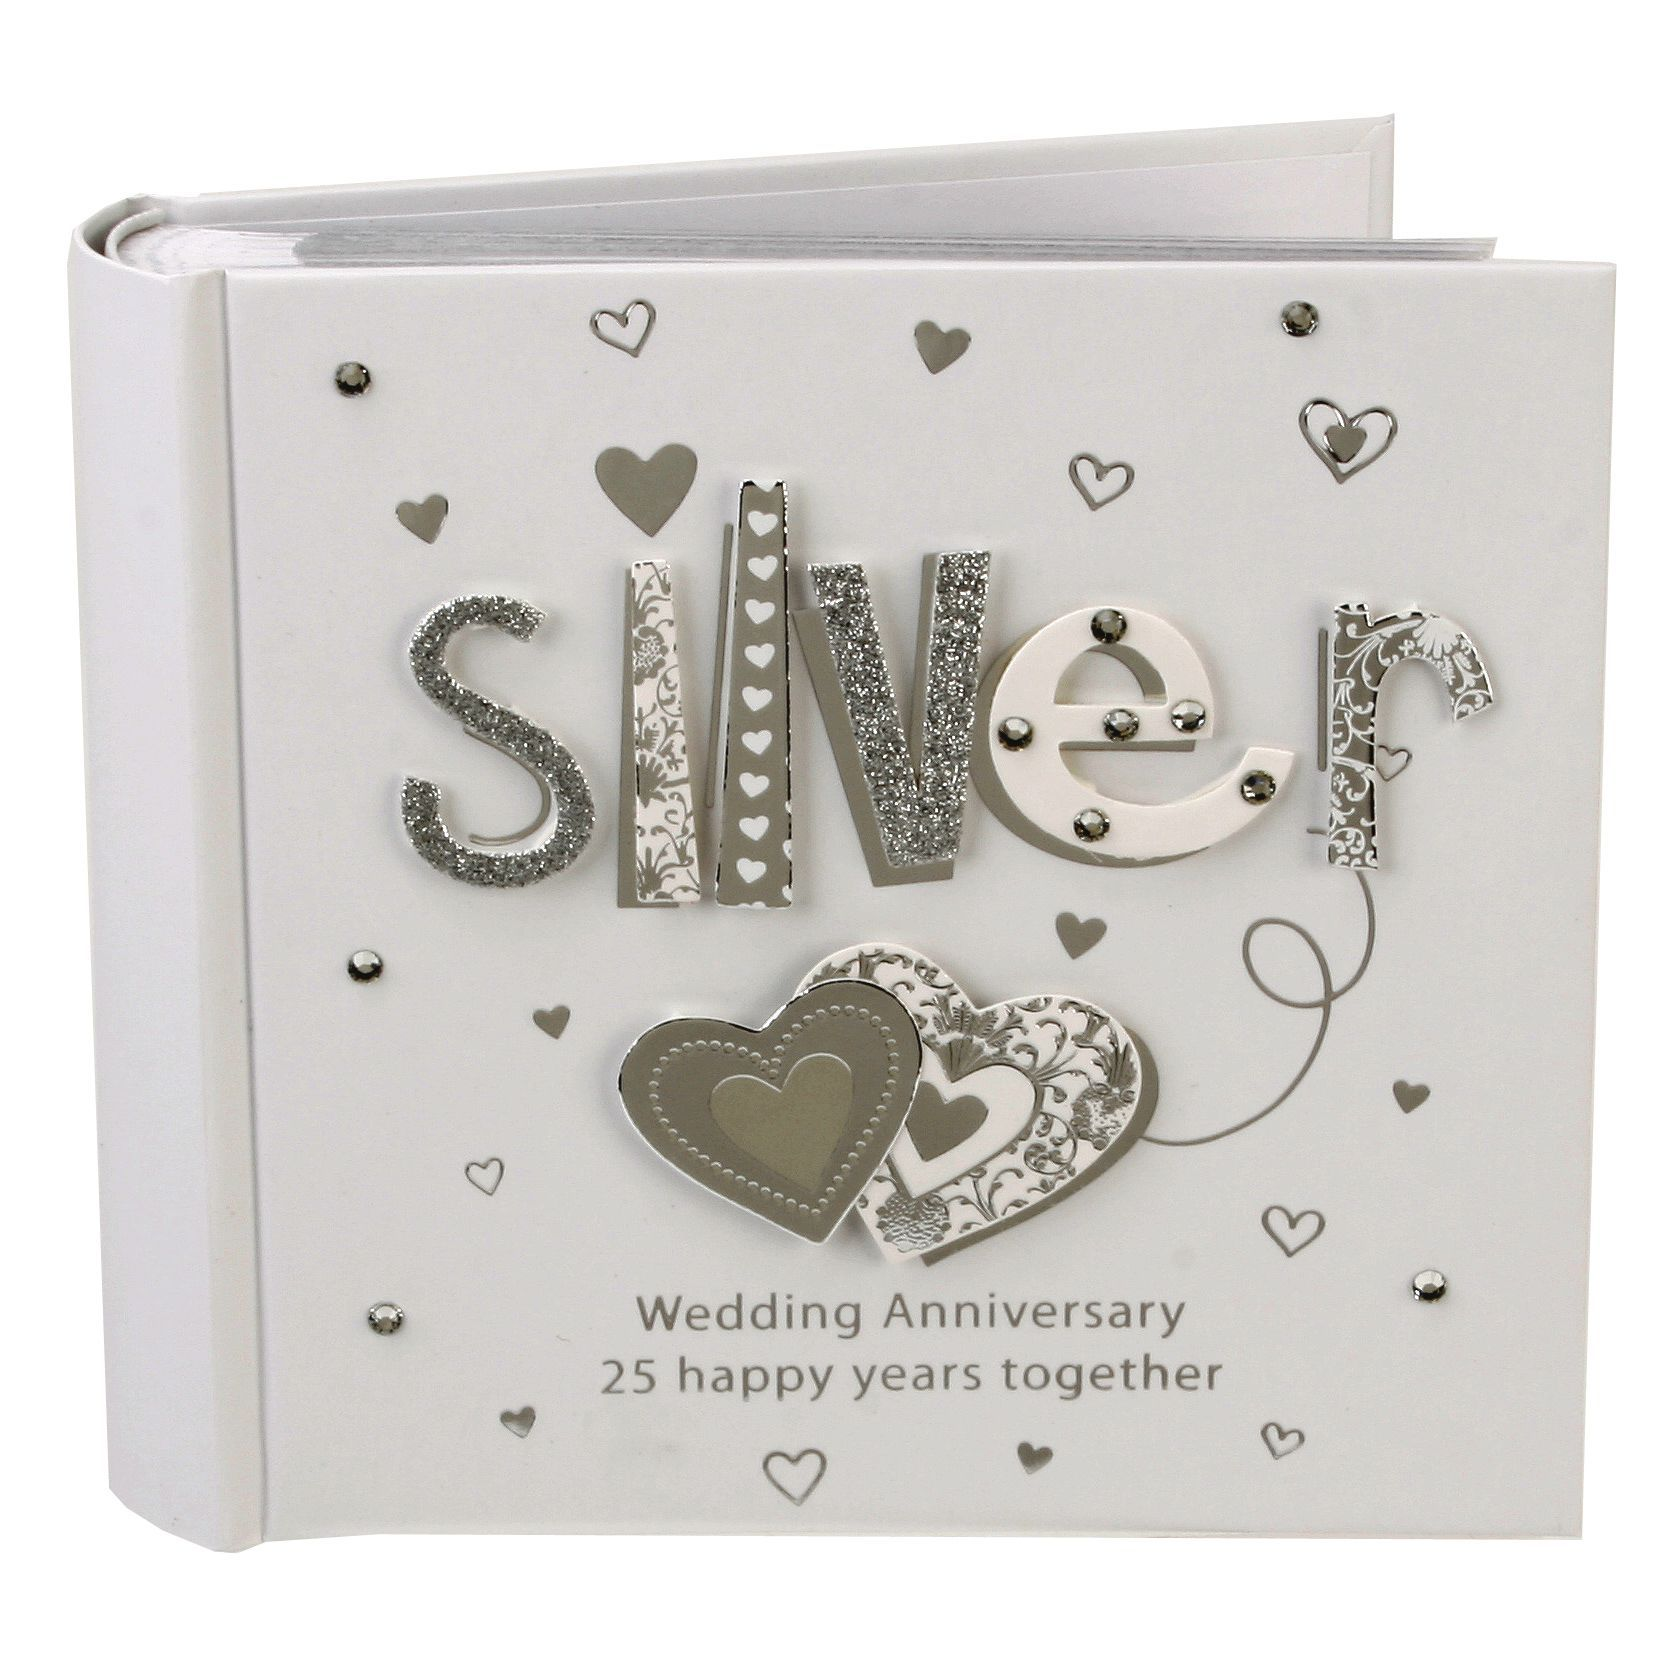 Wedding Anniversary Ideas Parents Wedding Anniversary Gifts Anniversary Gifts Wedding Anniversaries Gift Gift Ideas Parents